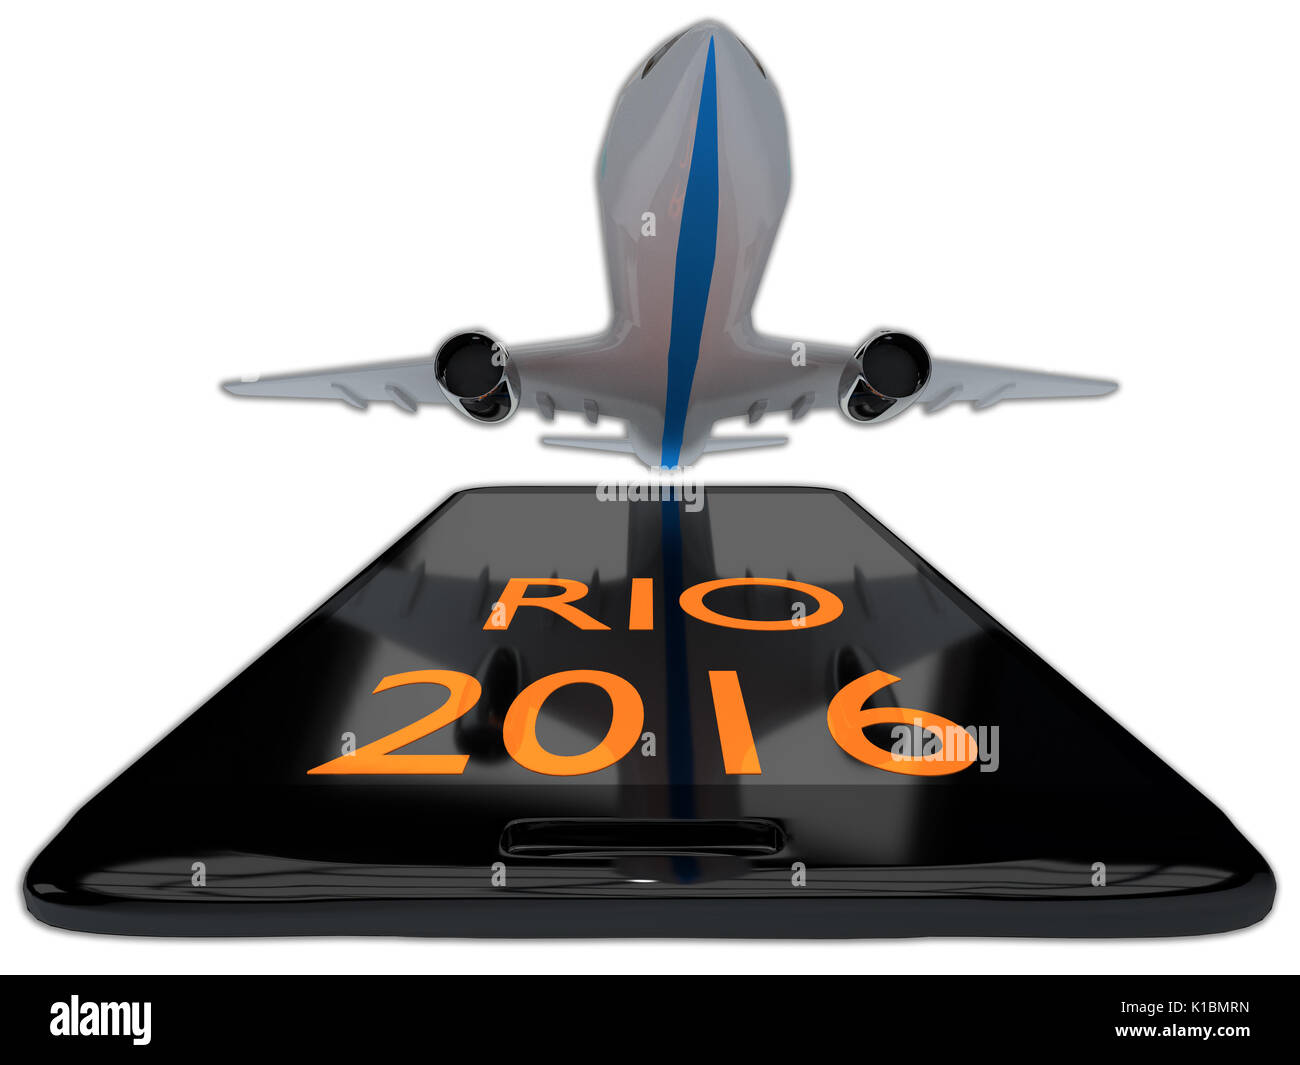 Render illustration of Rio 2016 title on cellular phone, isolated on white. - Stock Image